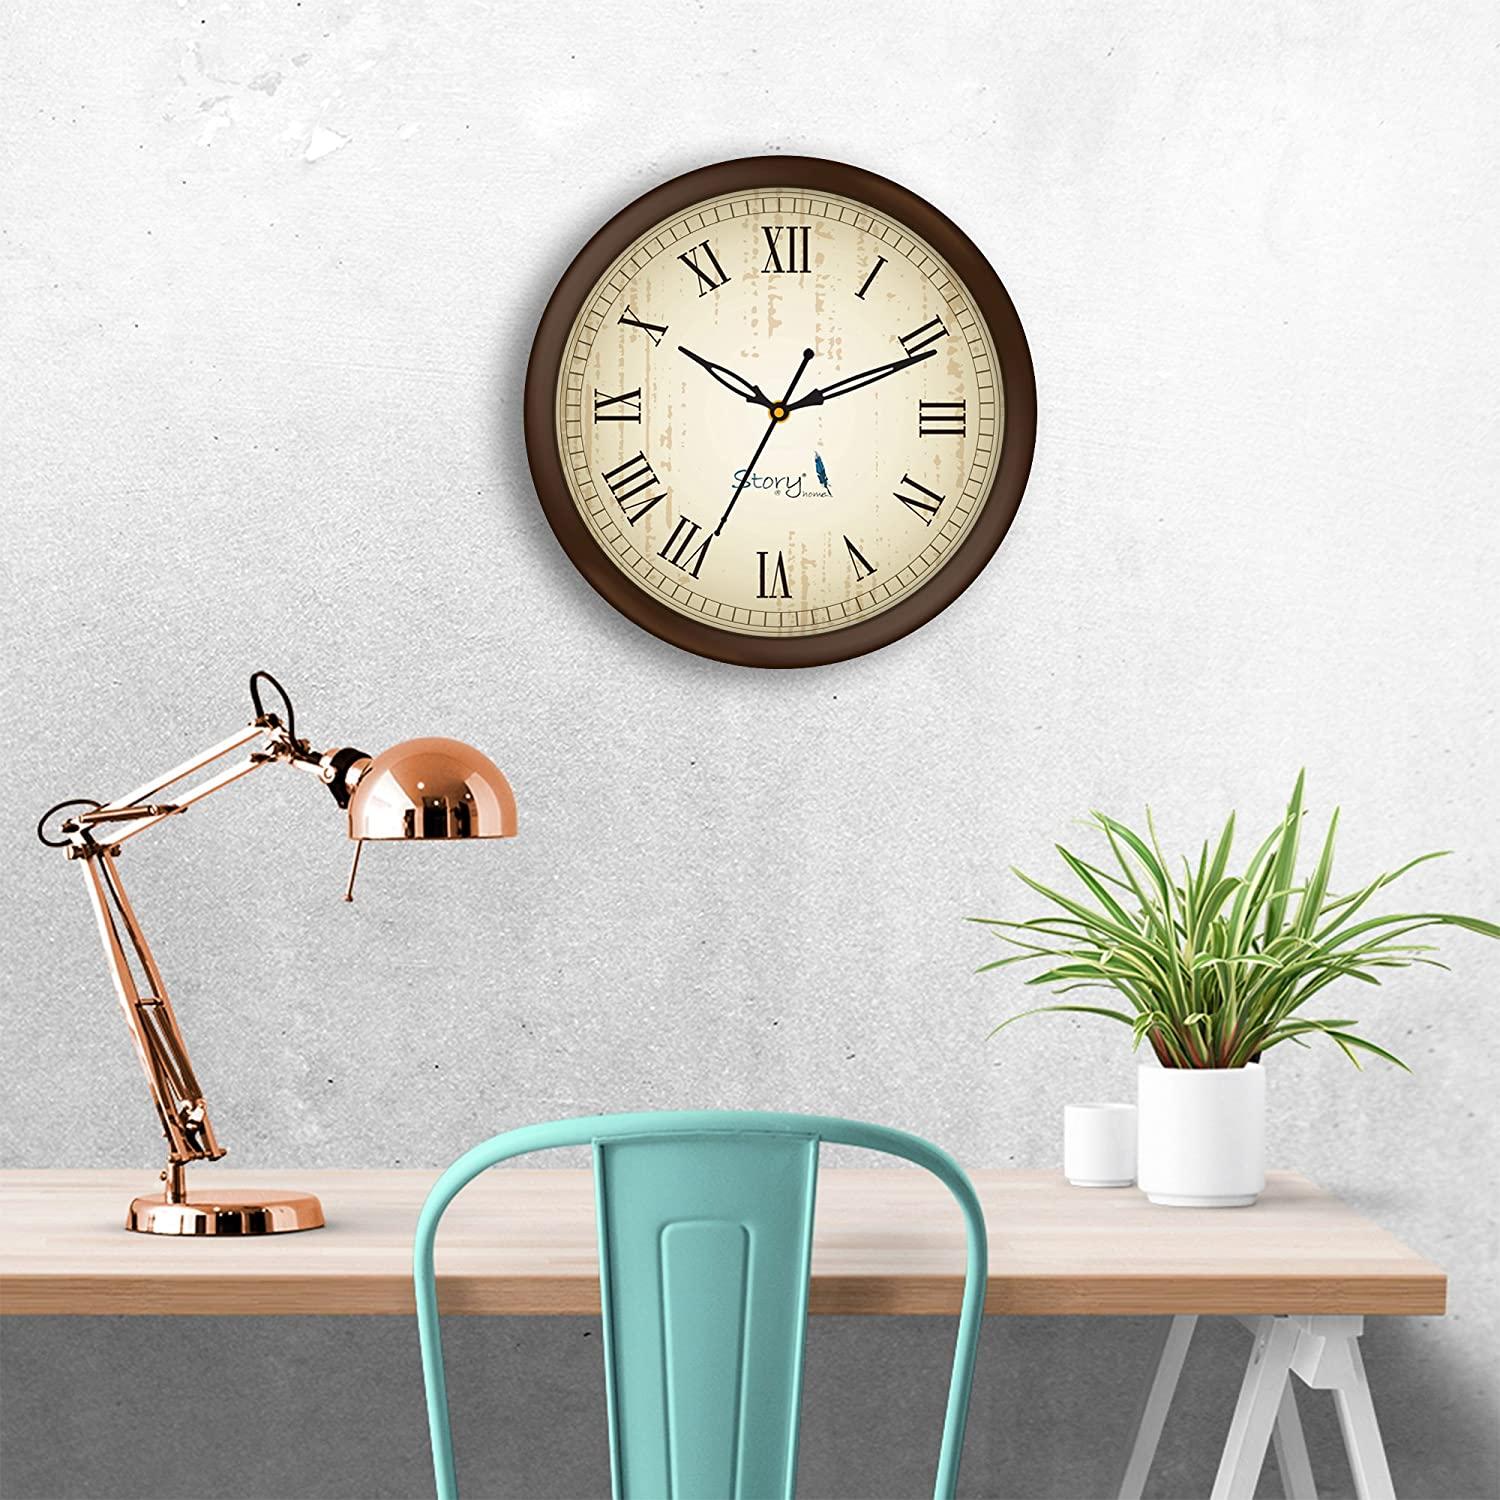 Home and Decor Wall Clock